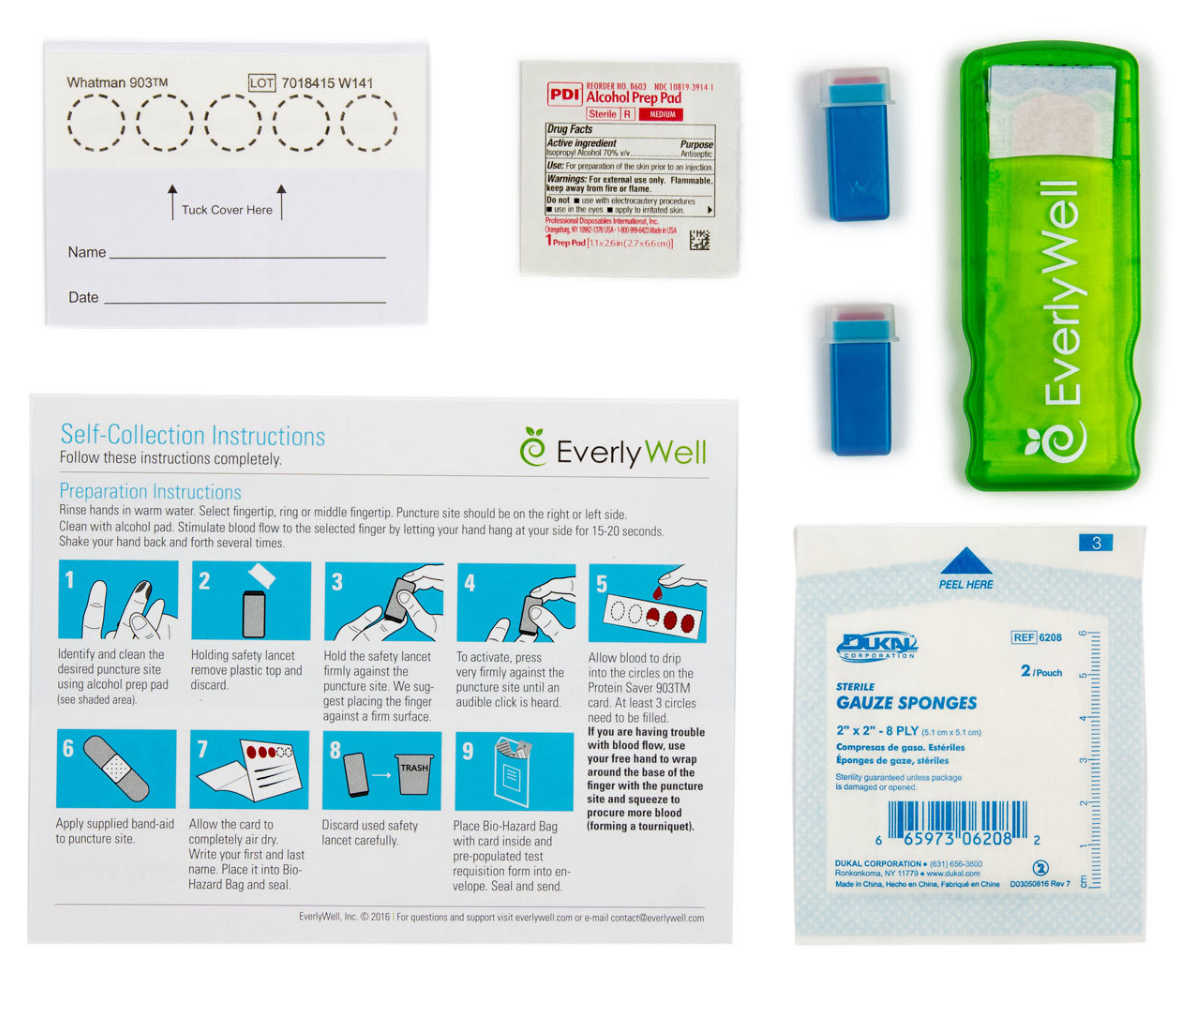 EverlyWell launches at-home lab test service | MobiHealthNews